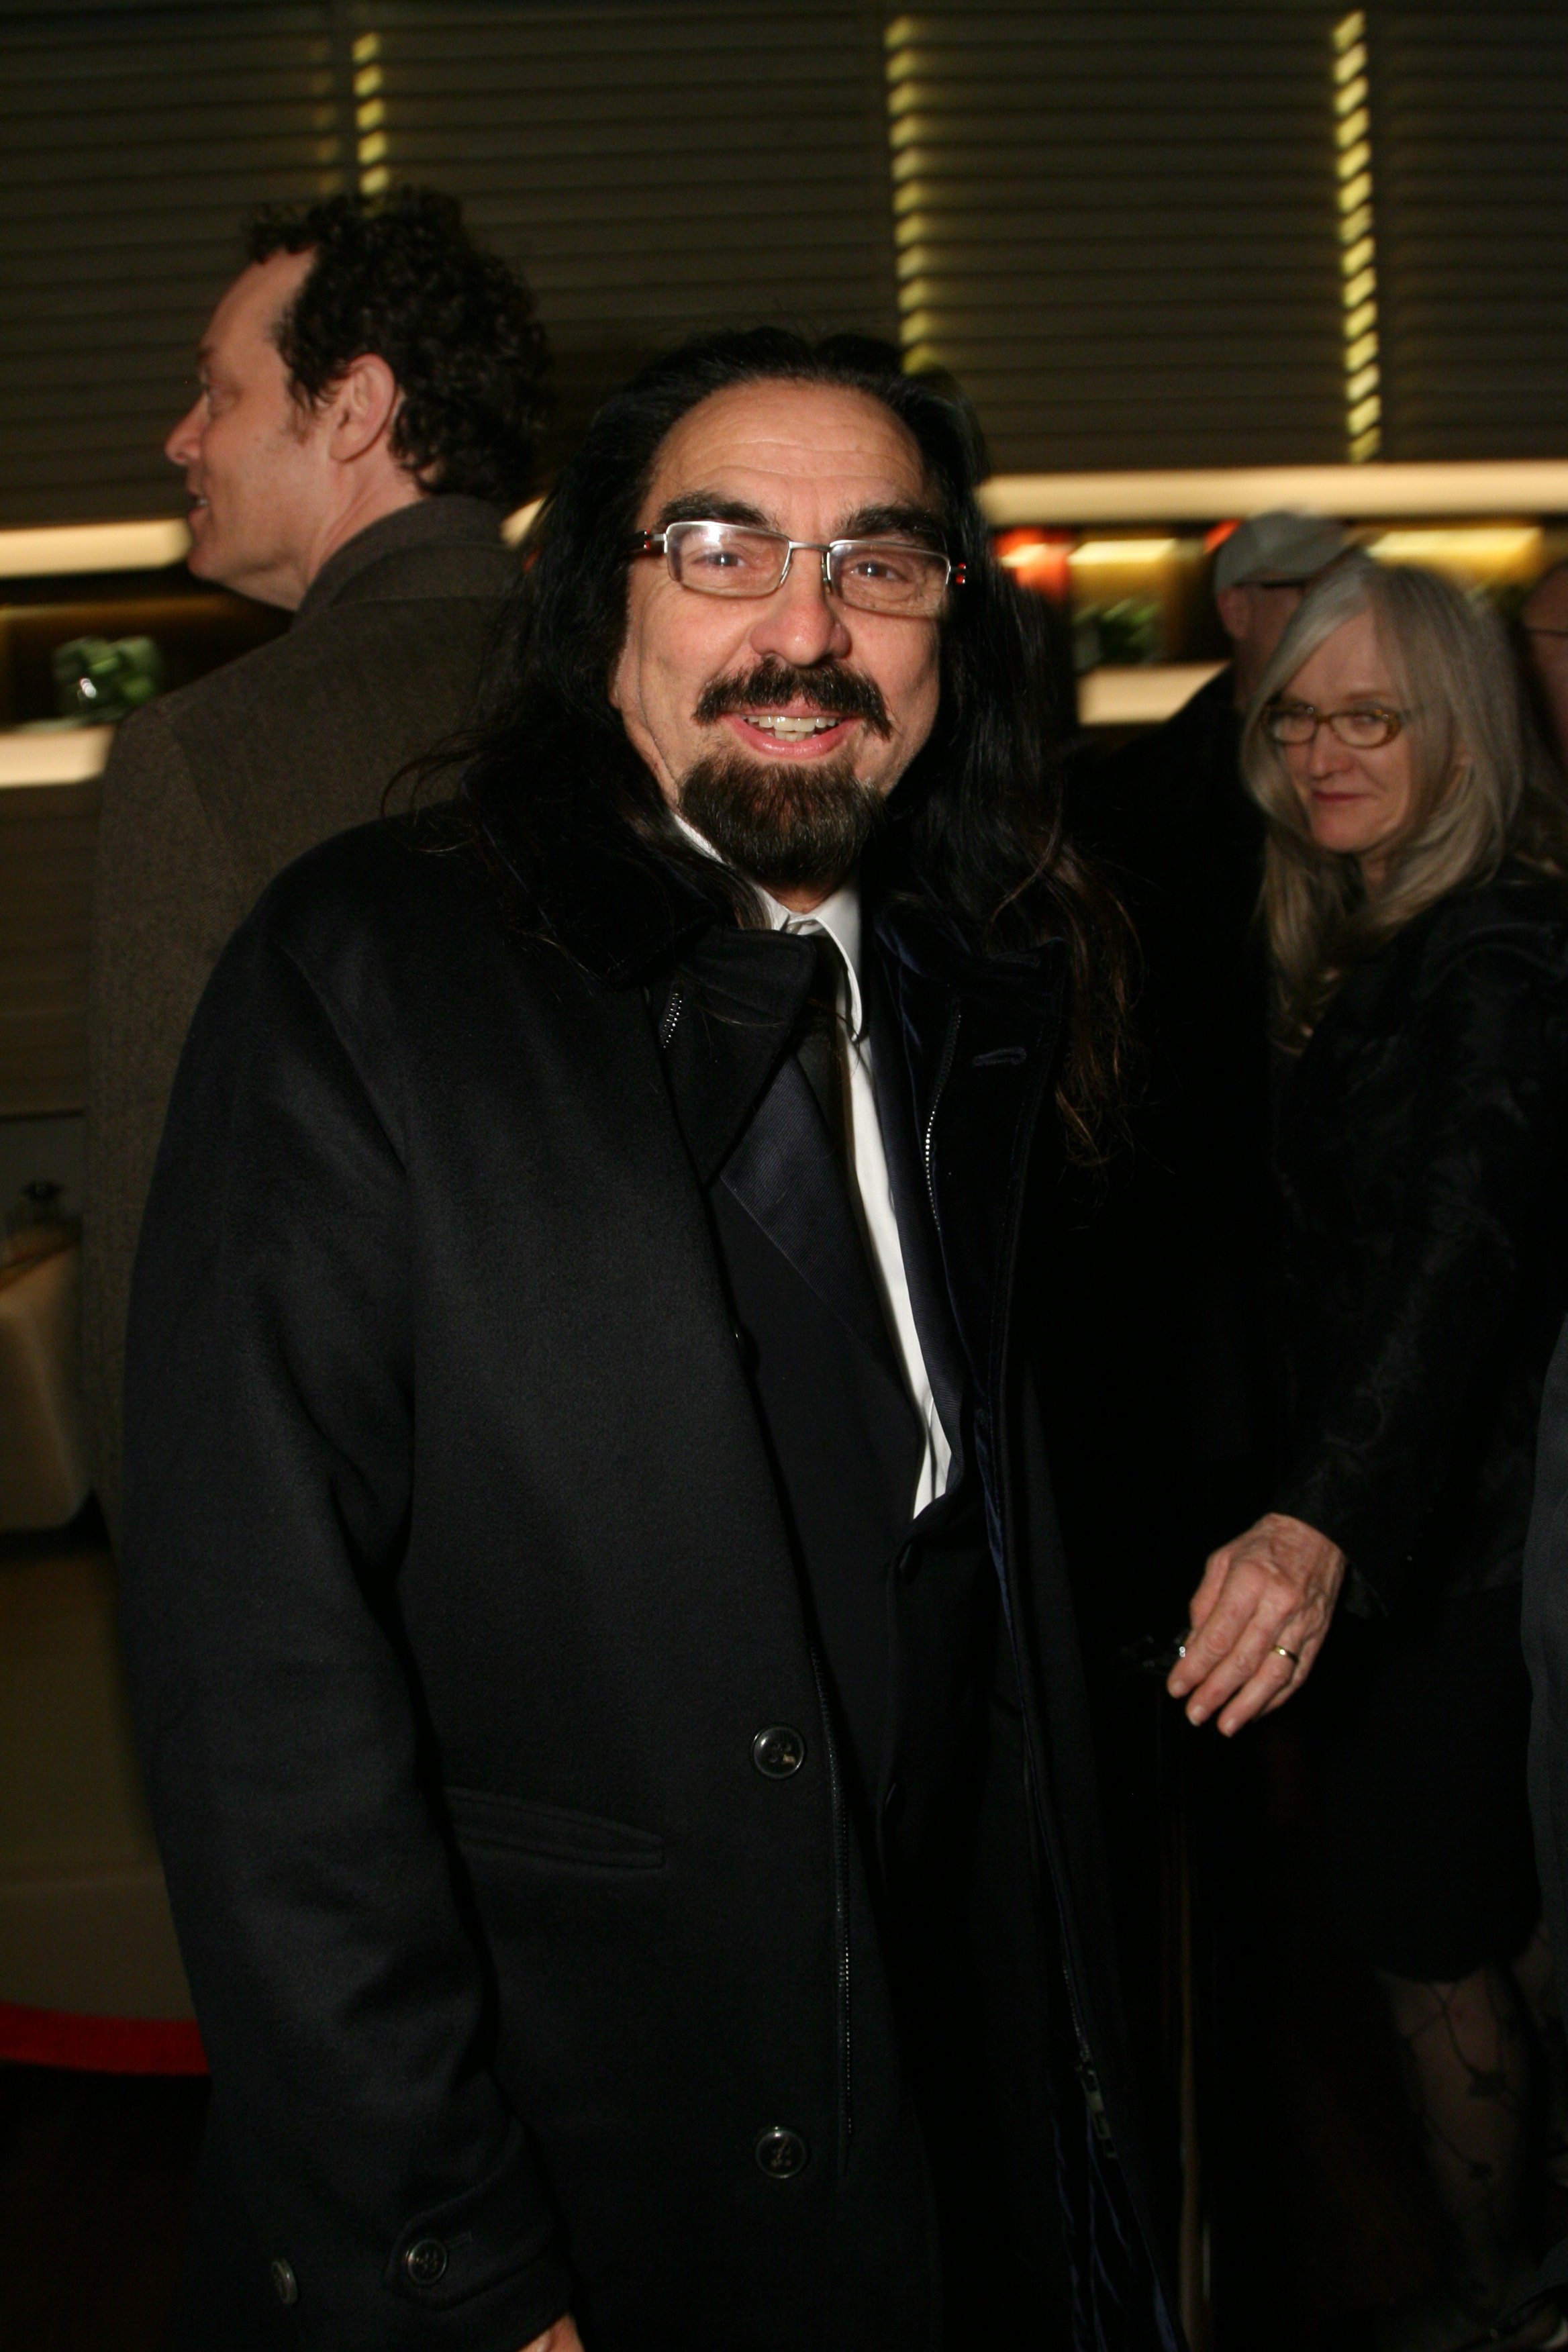 Paramount Pictures Special Screening of 'Shutter Island' After Party in New York, America - 17 Feb 2010